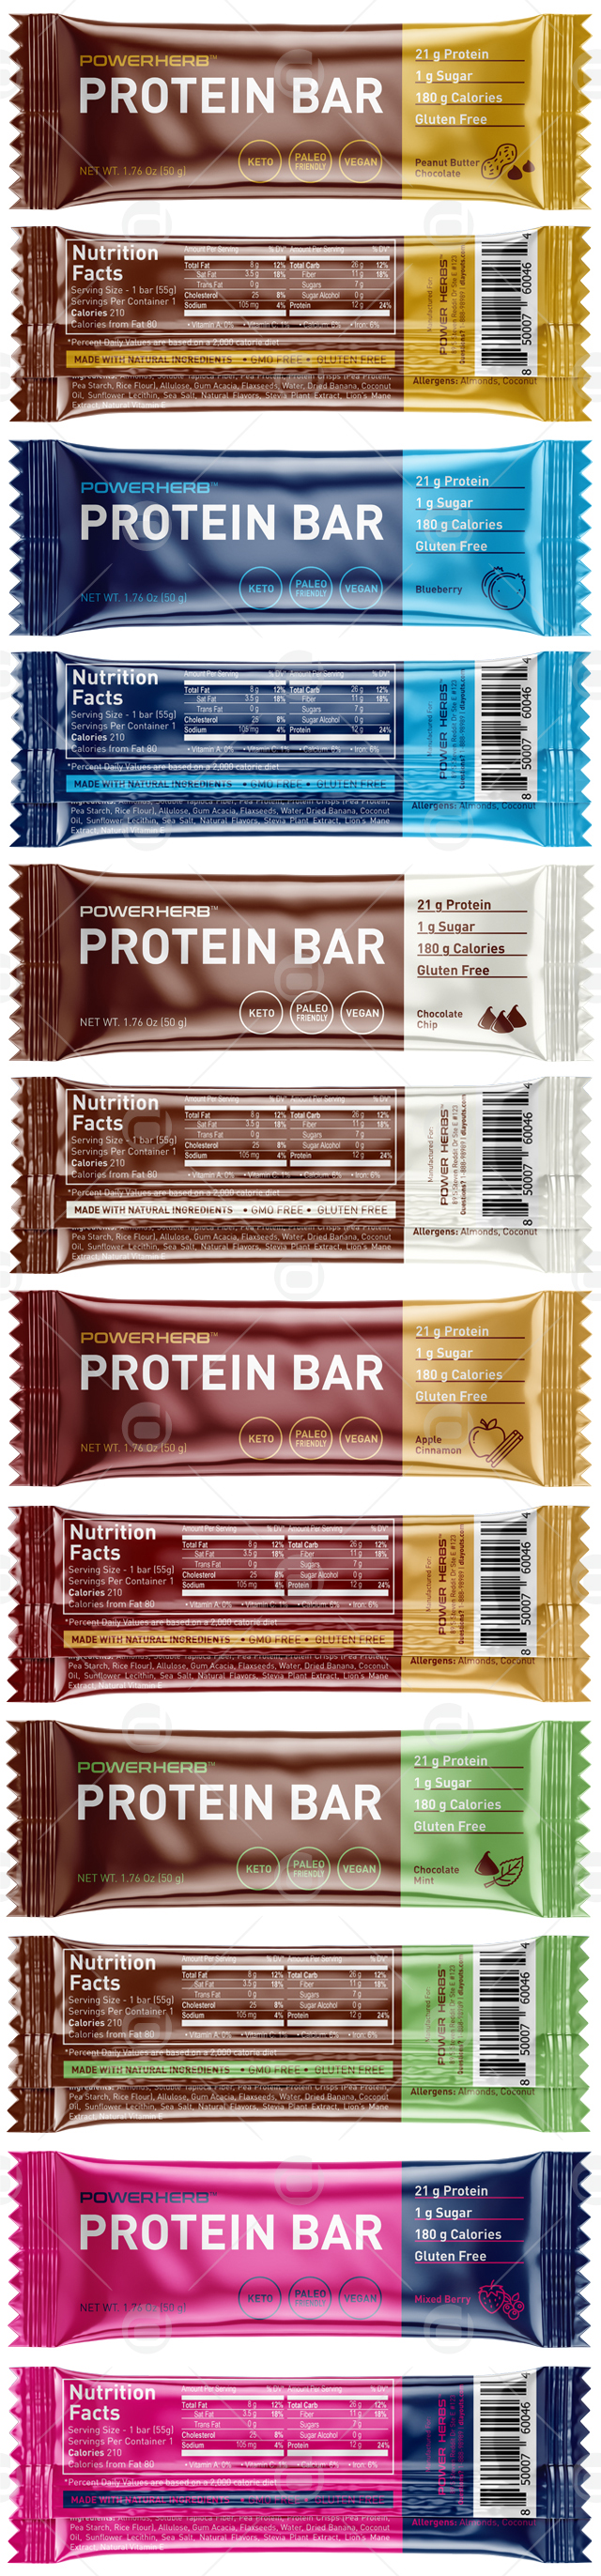 Protein Snack Bar Packaging Template